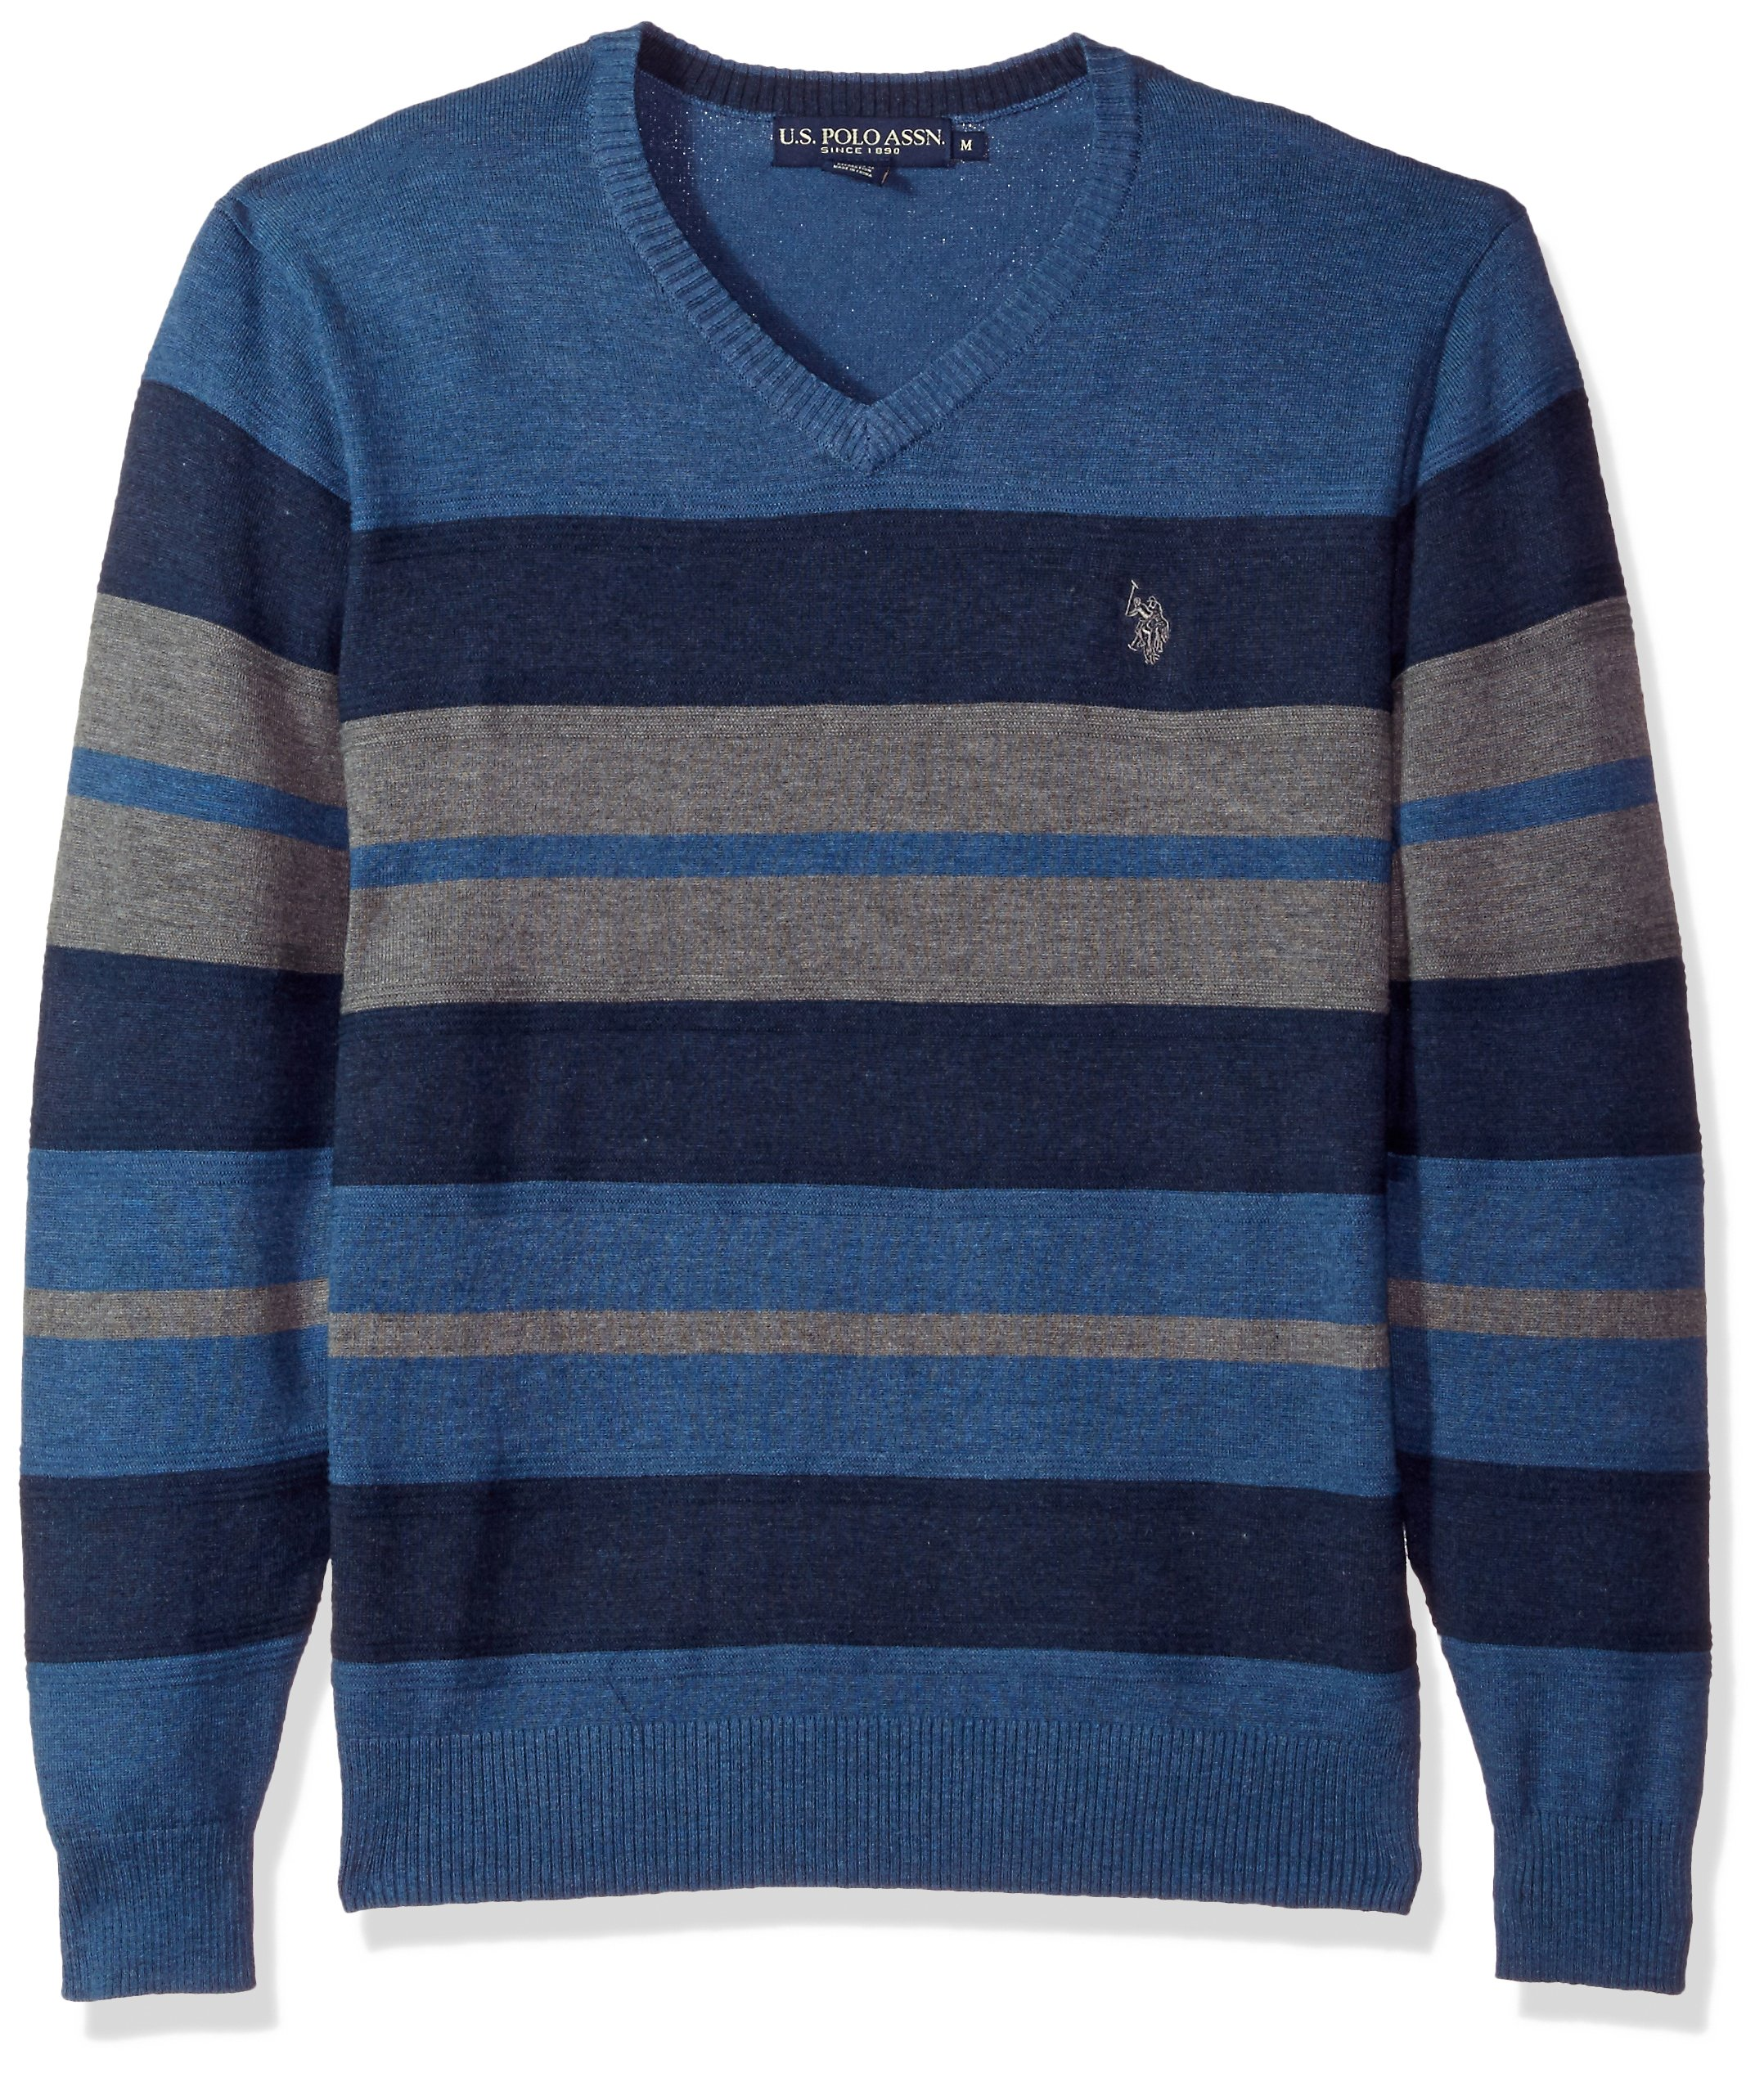 U.S. Polo Assn. Men's Stretch Textured Stripe V-Neck Sweater, Pacific Heather, XX-Large